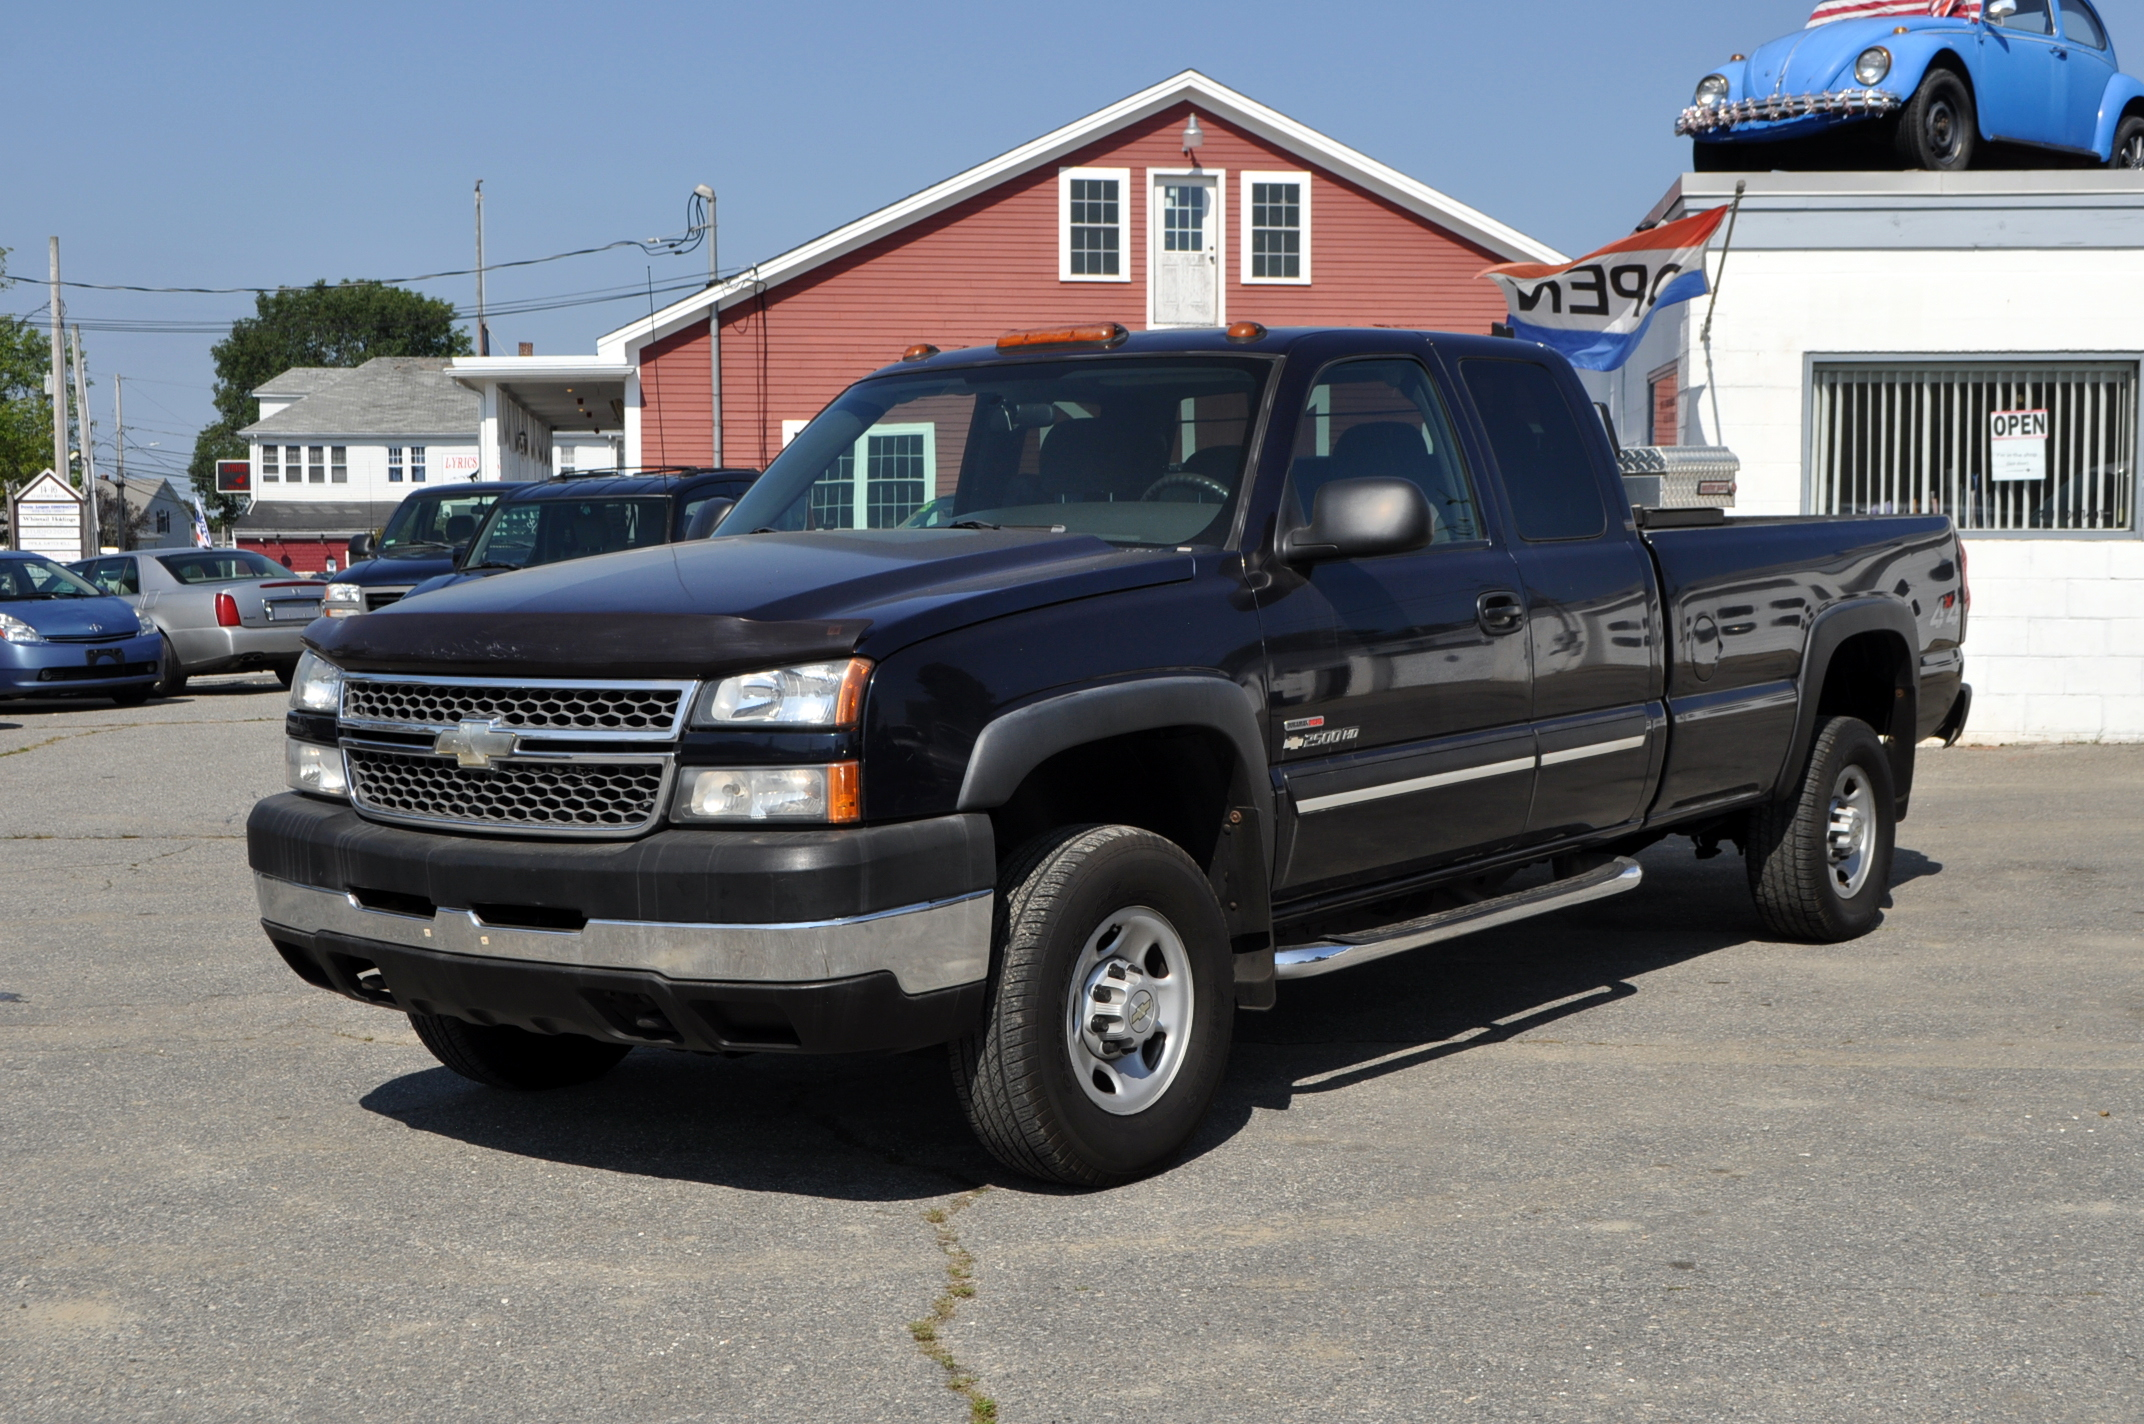 2006 chevy 2500hd lt 4x4 duramax diesel very clean 81k miles southern truck sold youtube